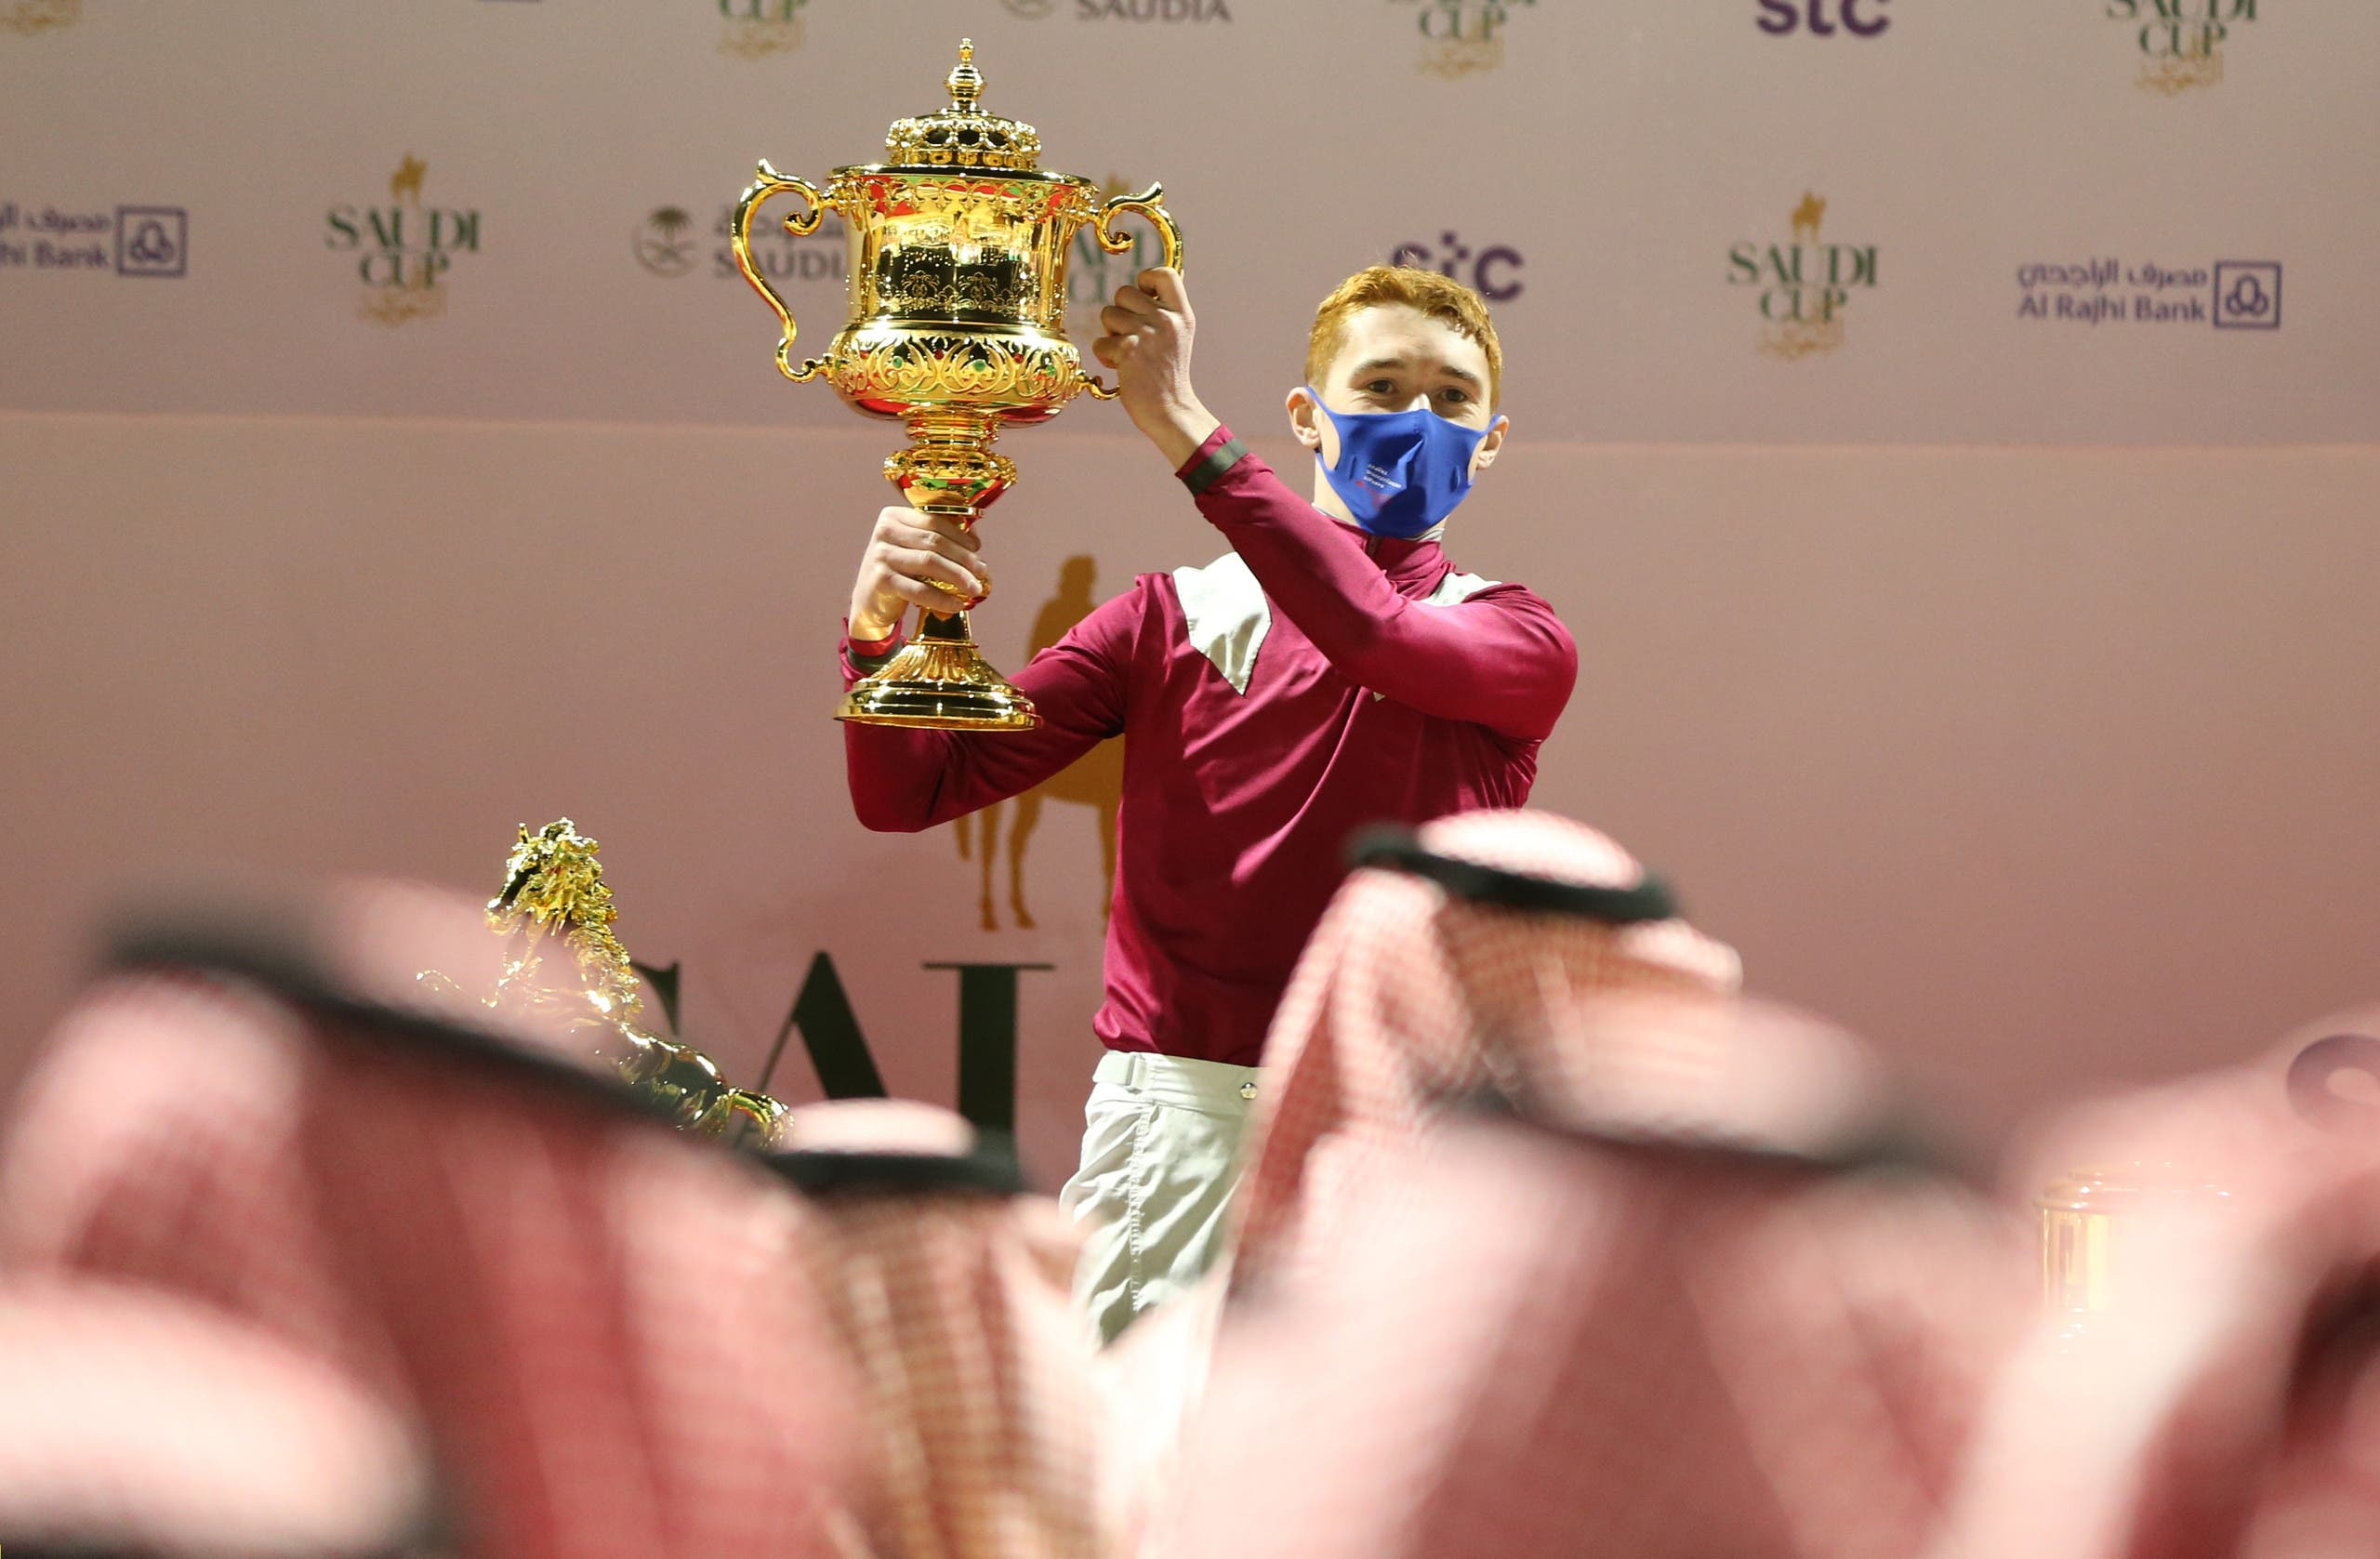 Jockey David Egan celebrates with the trophy after winning the Saudi Cup riding Mishriff. (Reuters)